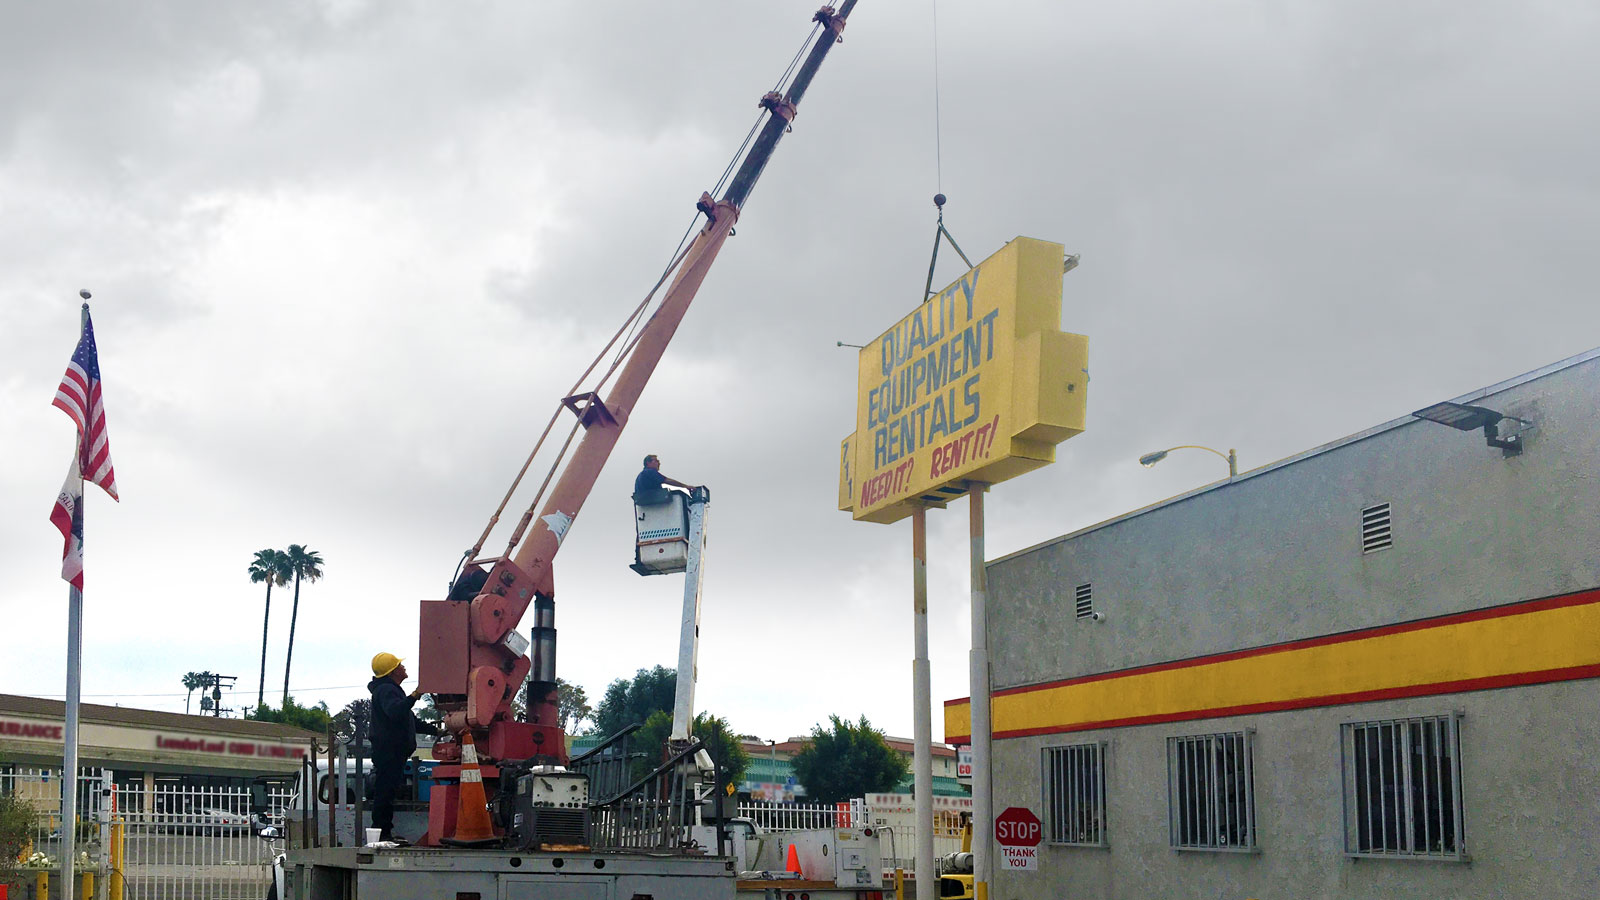 The process of replacement of a pylon signage